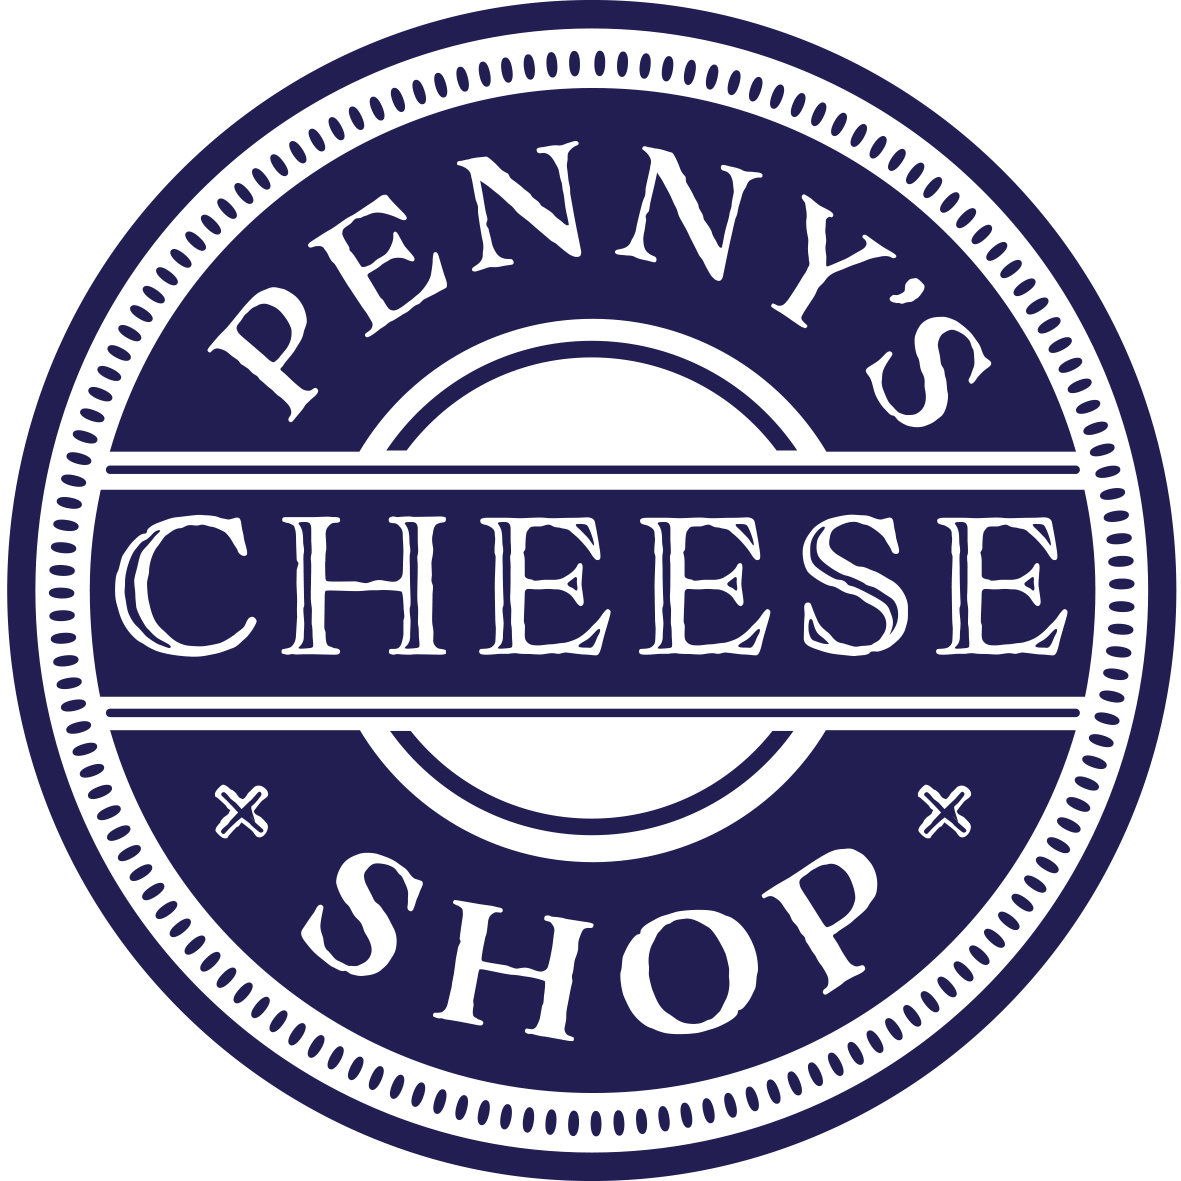 Penny's Cheese Shop